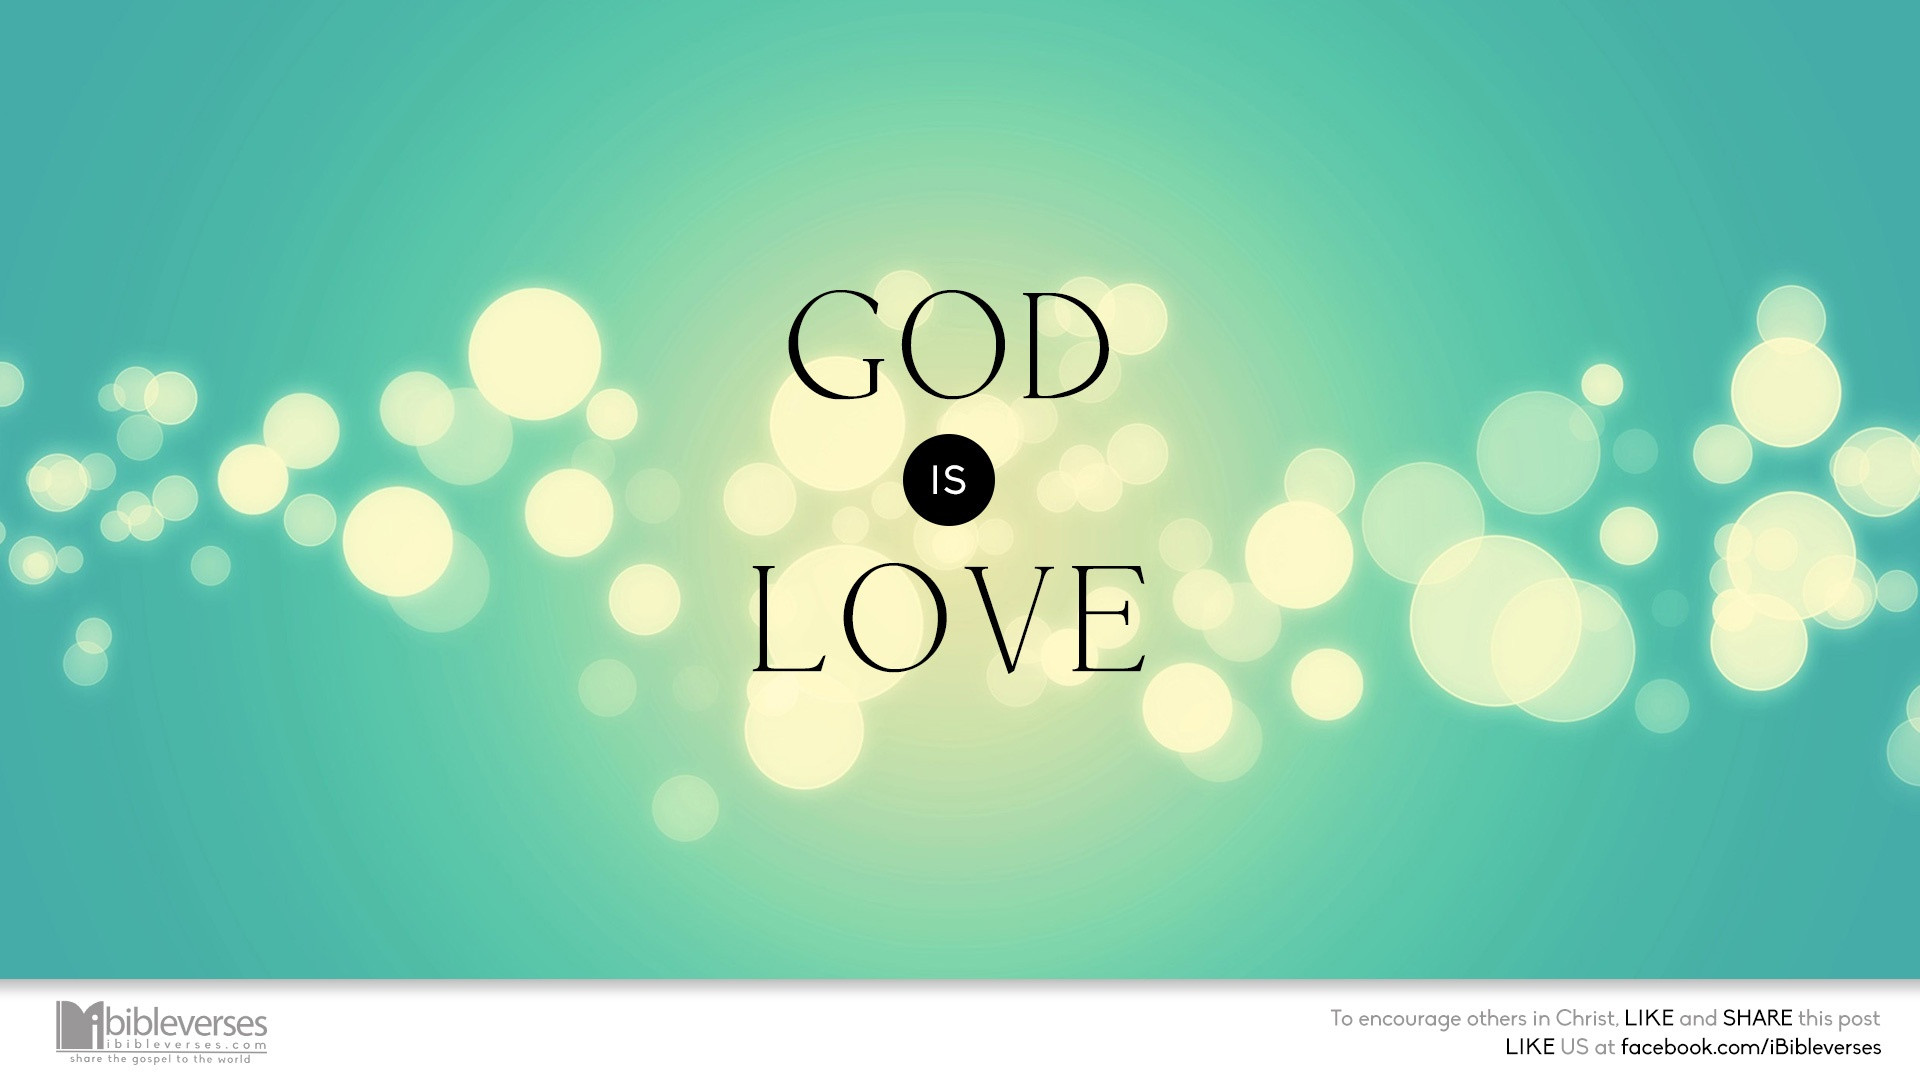 Love God Wallpapers : God Is Love Desktop Wallpaper (54+ images)